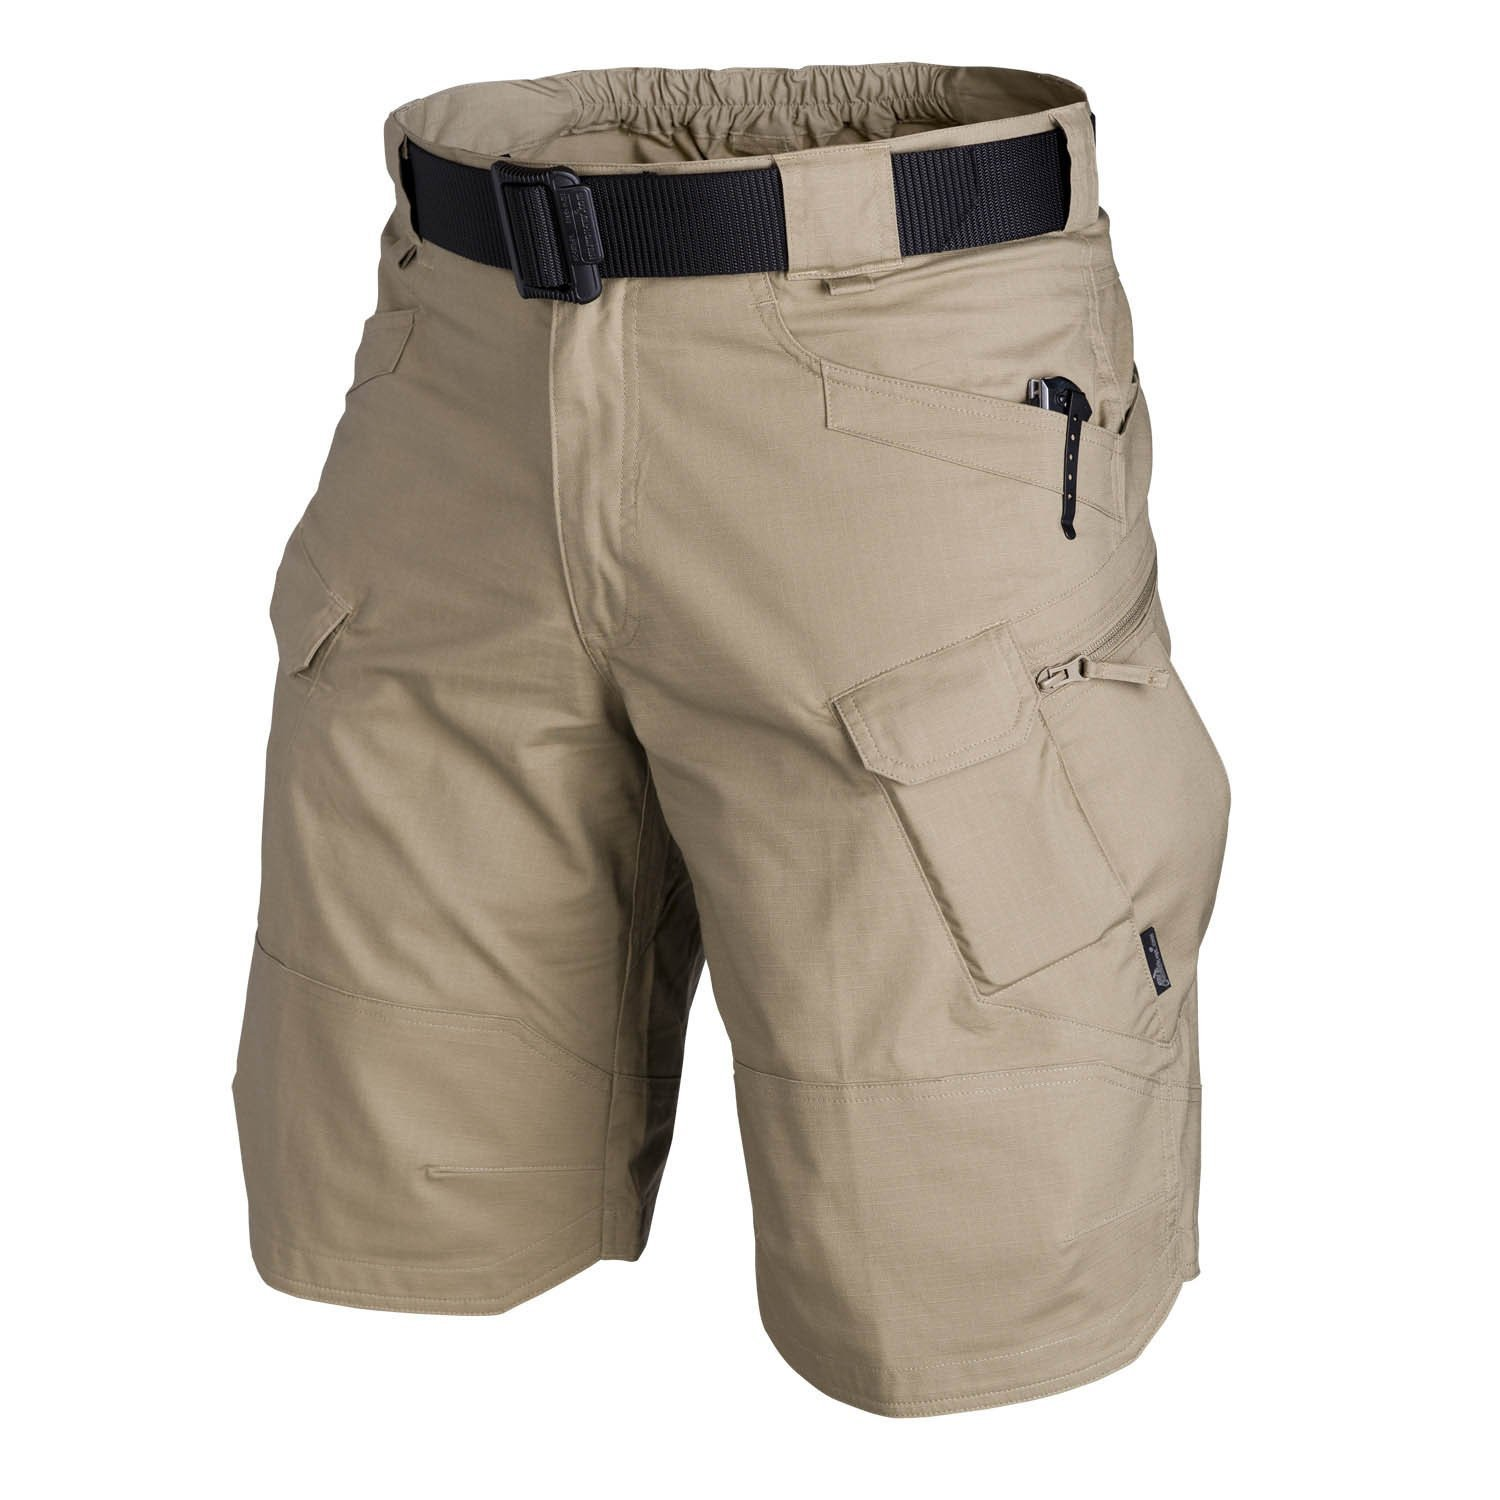 (ONLY $28.95 The Last Day) - IX9 Summer Comfortable Waterproof Tactical Shorts